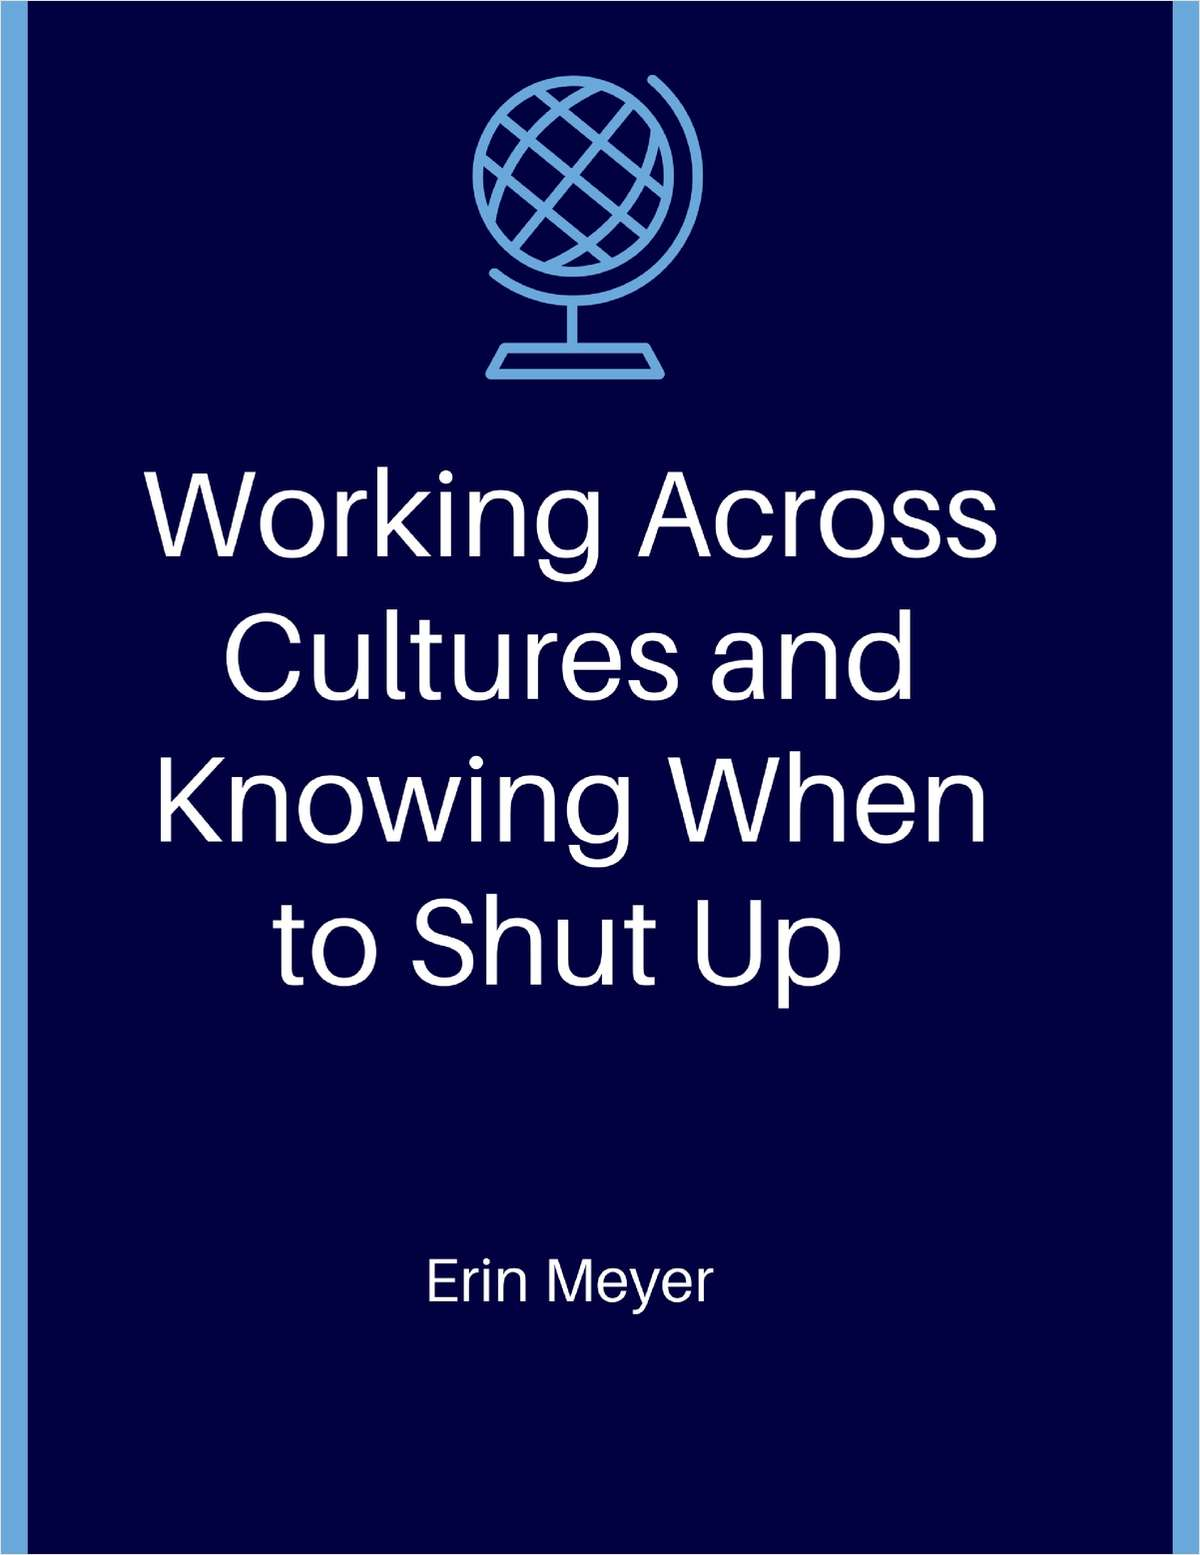 Working Across Cultures and Knowing When to Shut Up